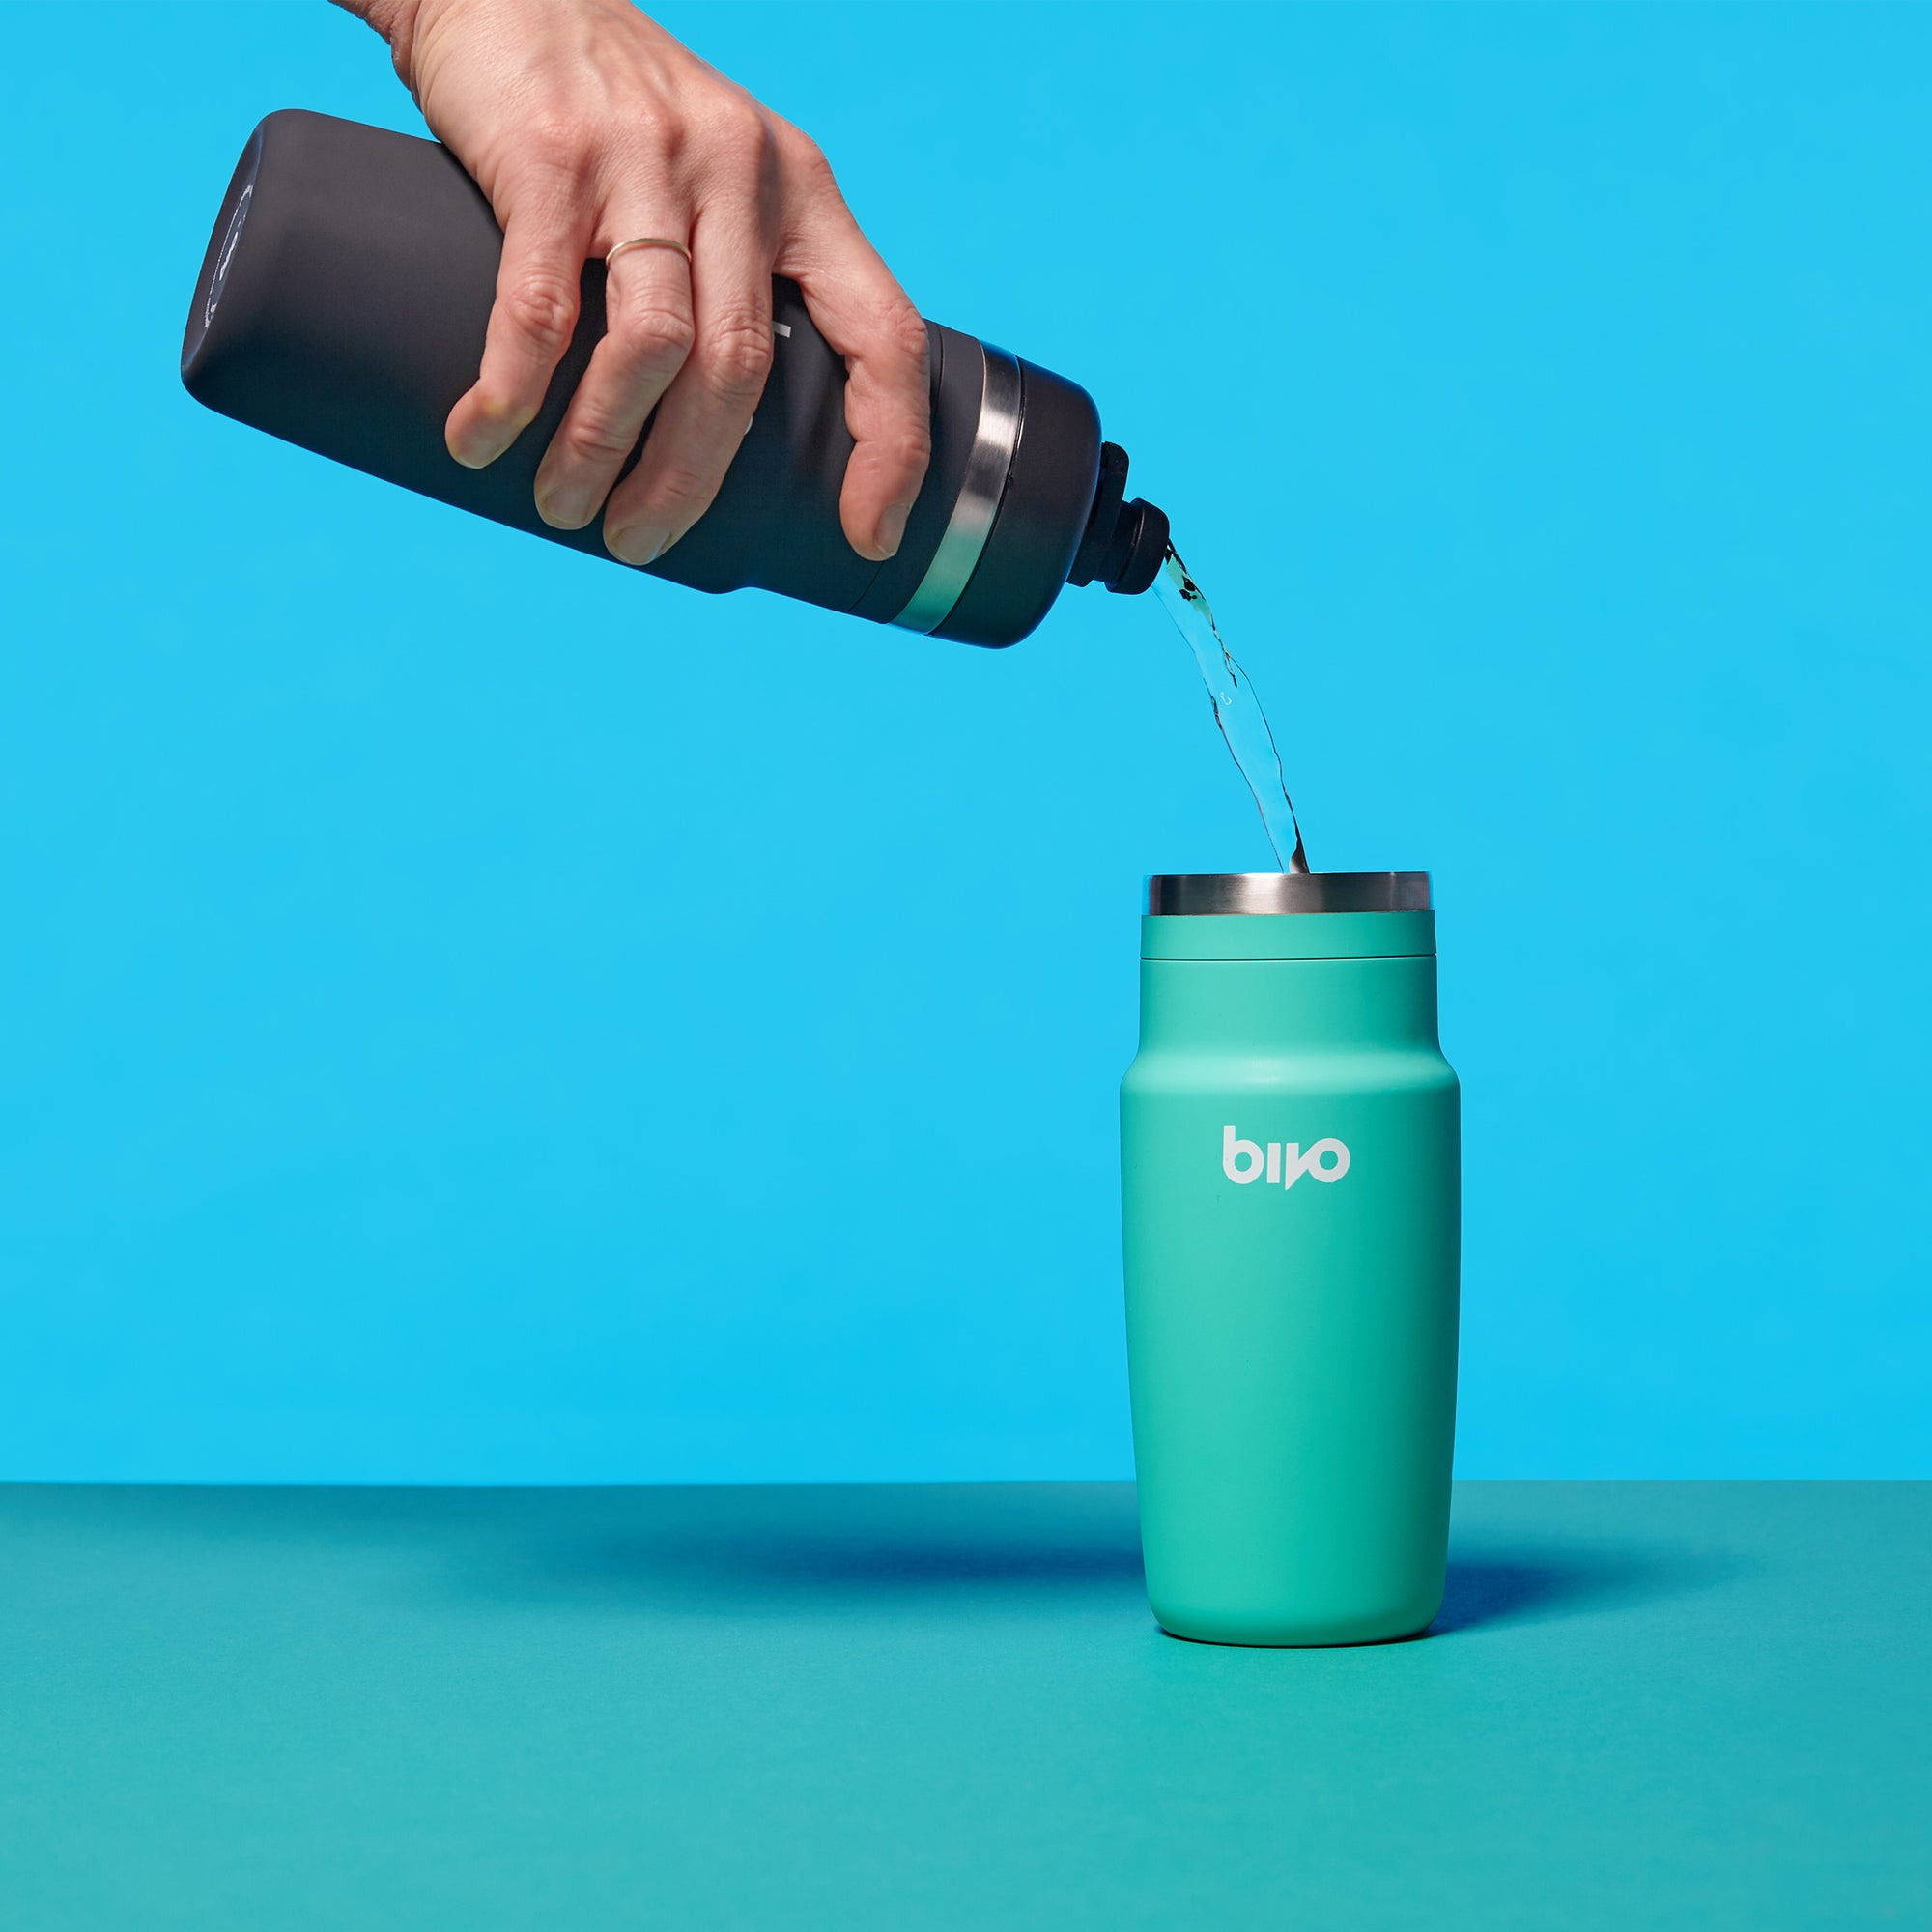 Bivo One stainless steel performance cycling water bottle with a flow-rate fit for cyclists. Built so you never have to experience the taste of plastic or mold again. Built to ride. Clean taste. Dishwasher safe.